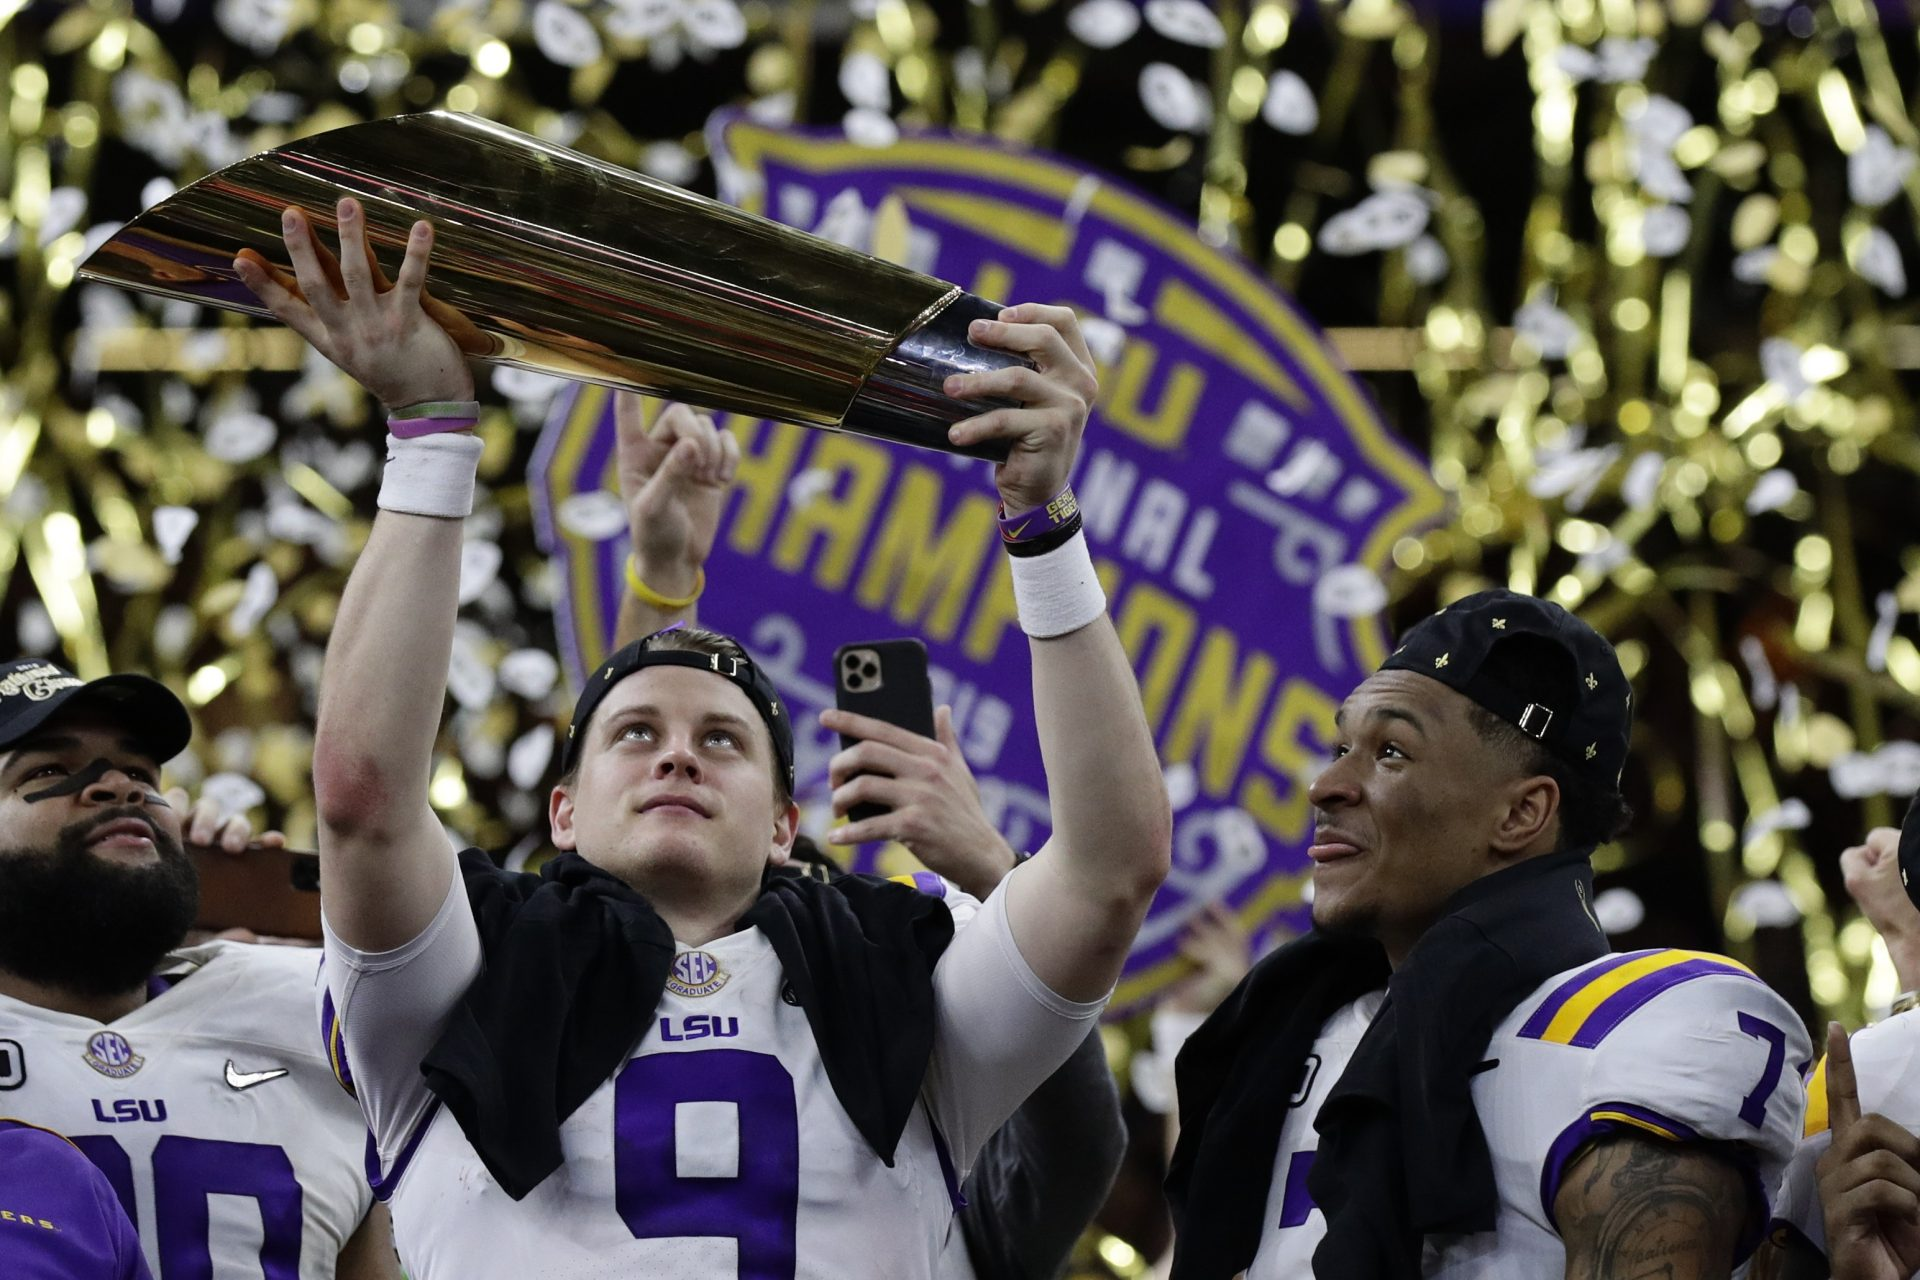 LSU quarterback Joe Burrow holds the trophy as safety Grant Delpit looks on after a NCAA College Football Playoff national championship game against Clemson, Monday, Jan. 13, 2020, in New Orleans. LSU won 42-25.